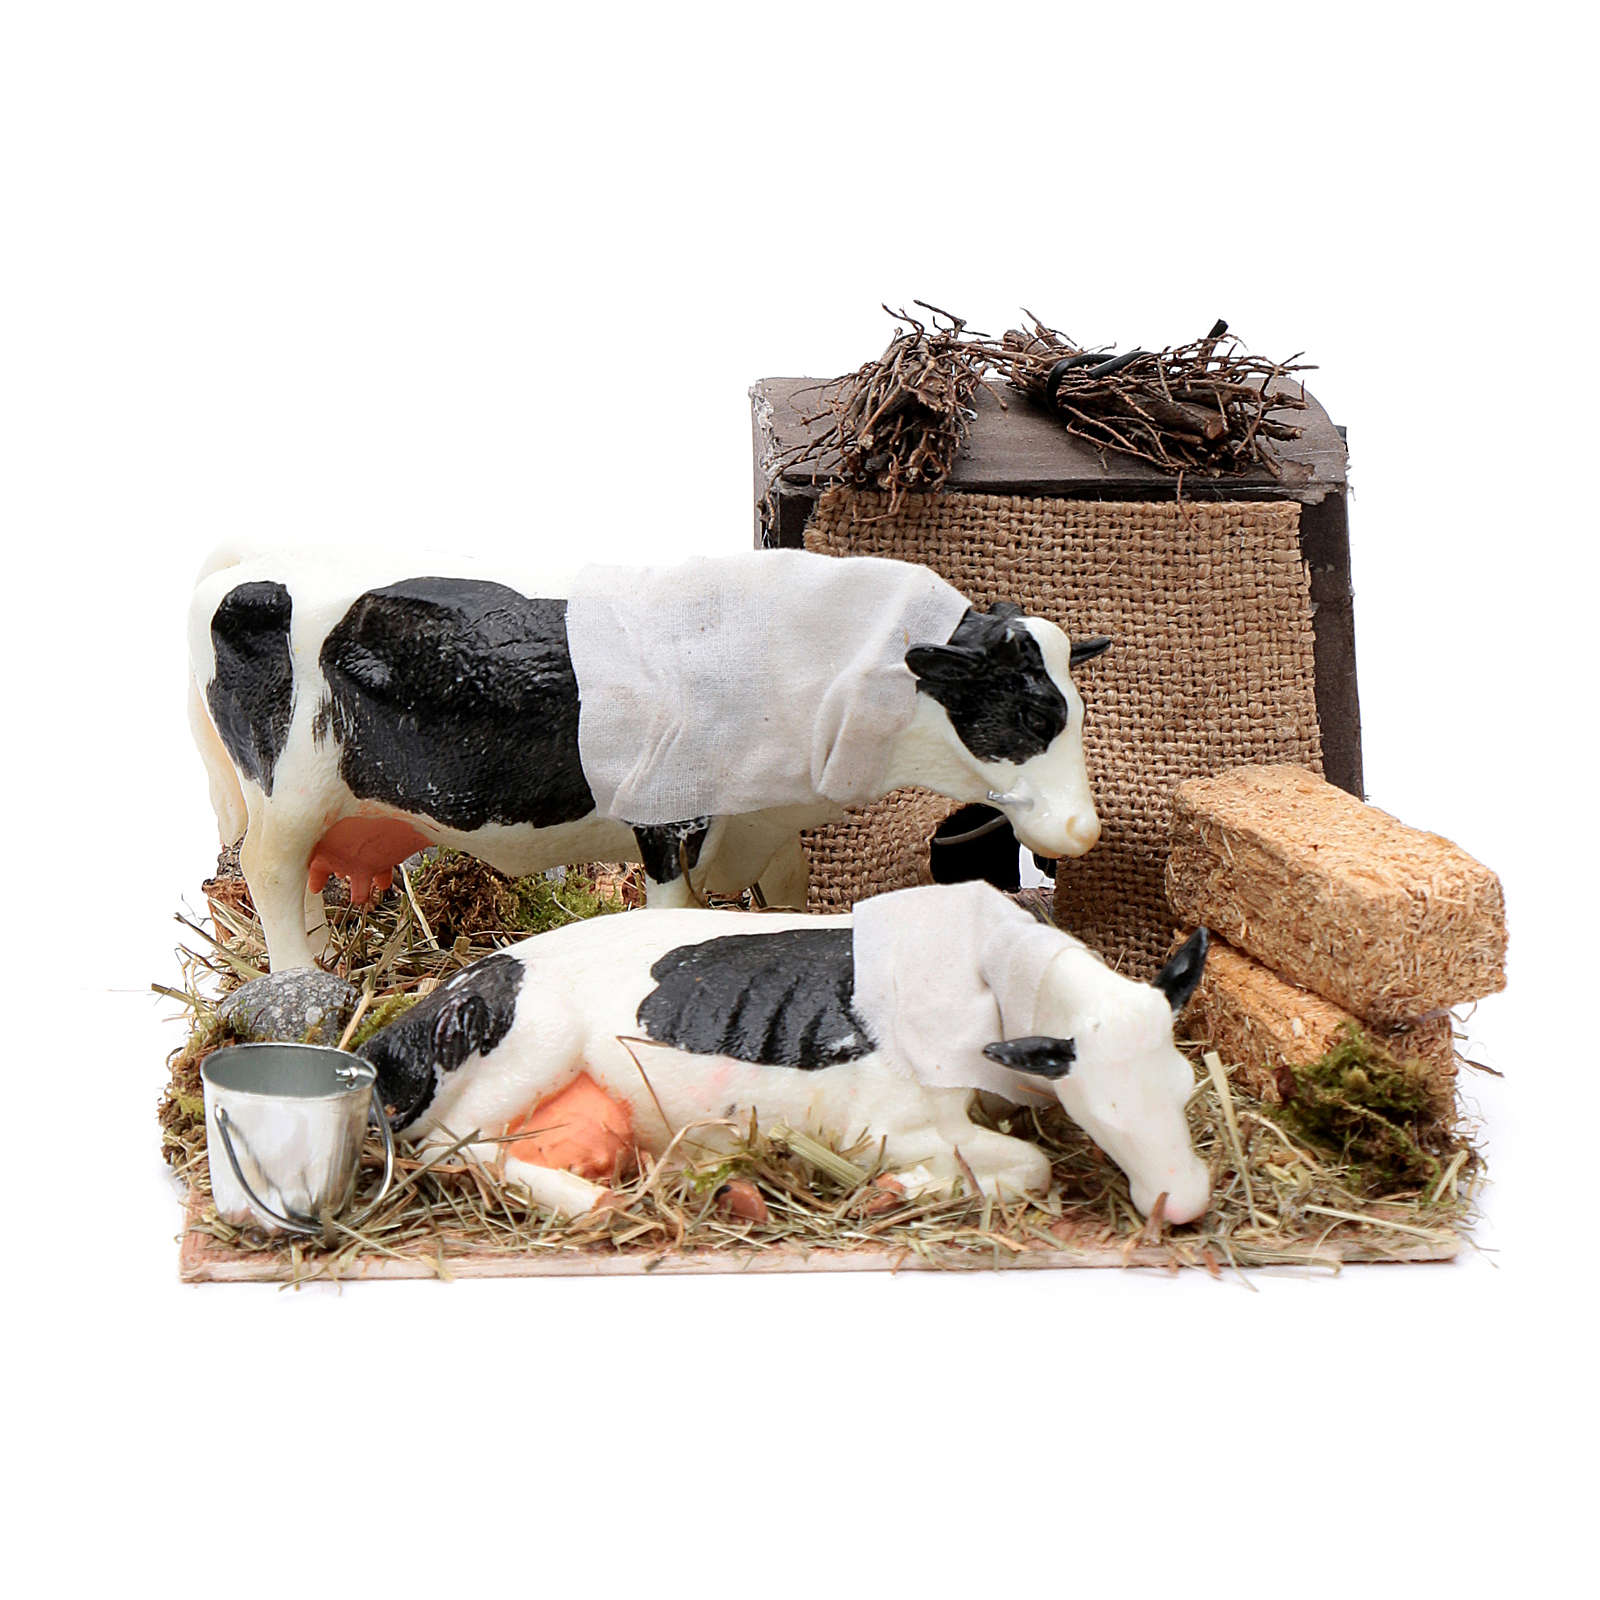 Neapolitan nativity scene moving cows with hay bale 12 cm 4